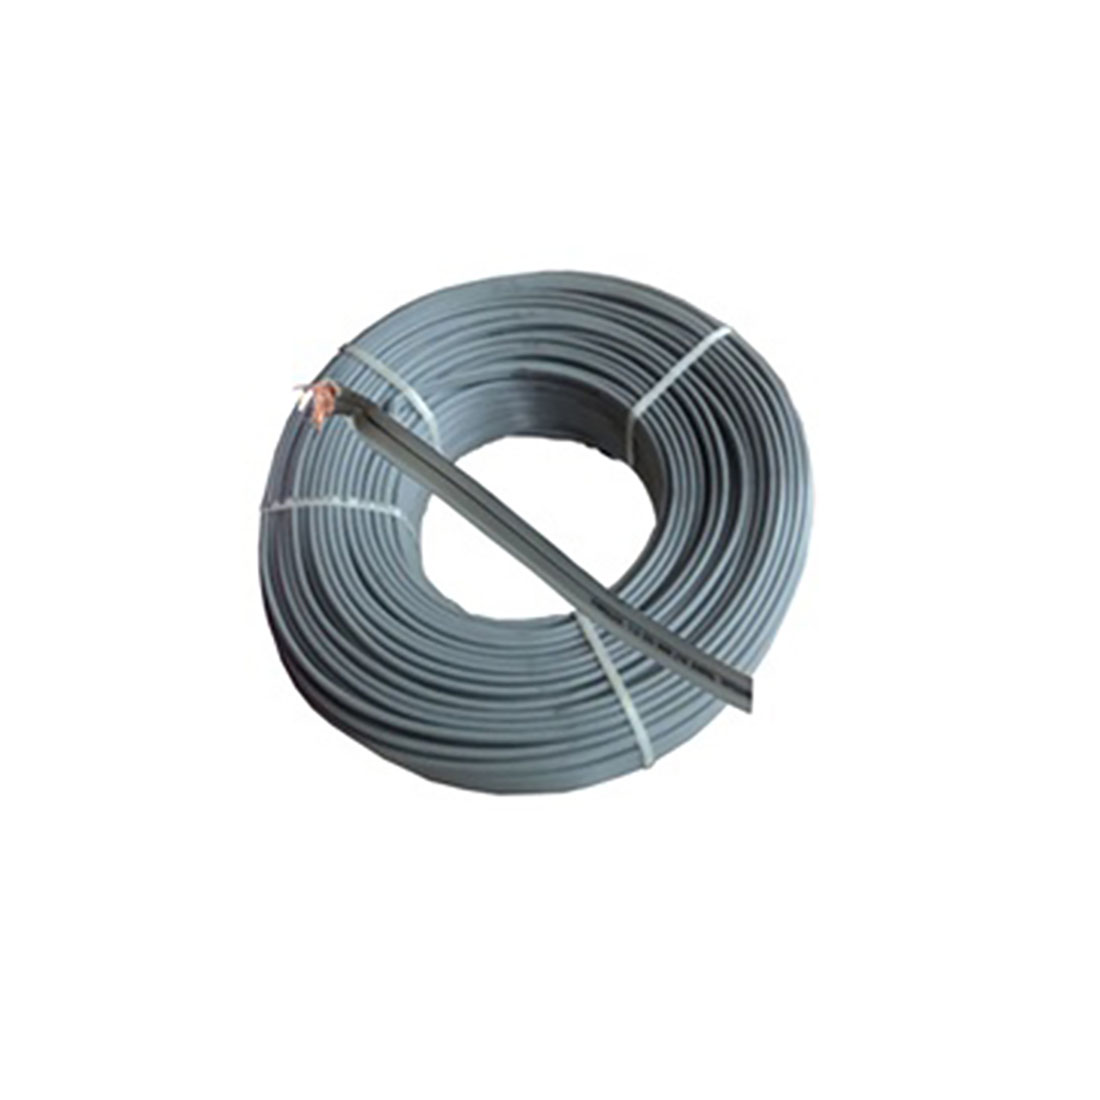 Sachvac Electrical Conduit With 2 X 05 Cables Wiring Cable